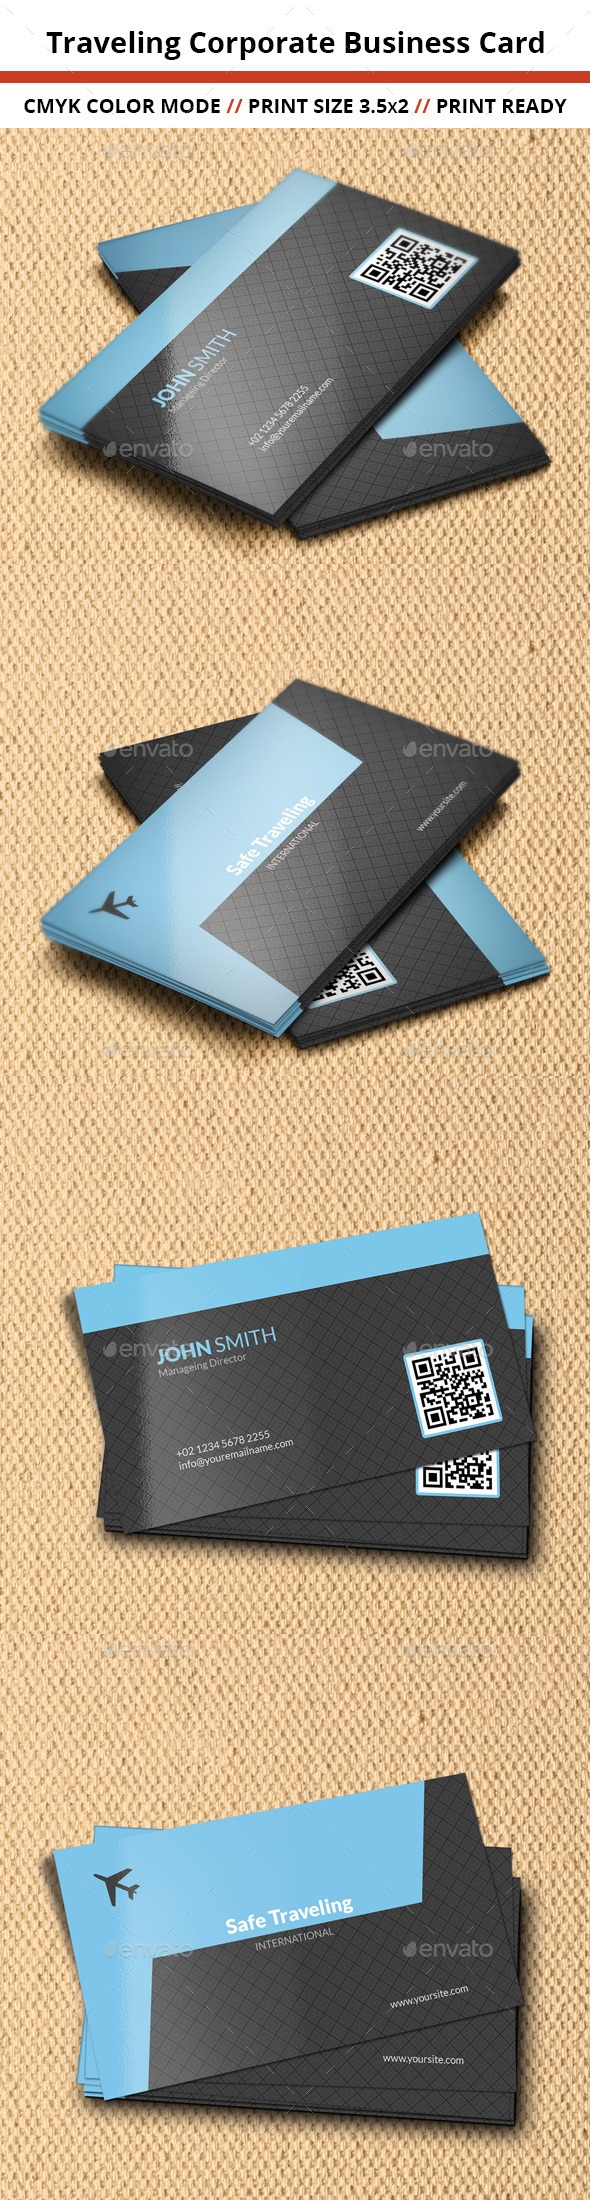 GraphicRiver Traveling Corporate Business Card 10945938